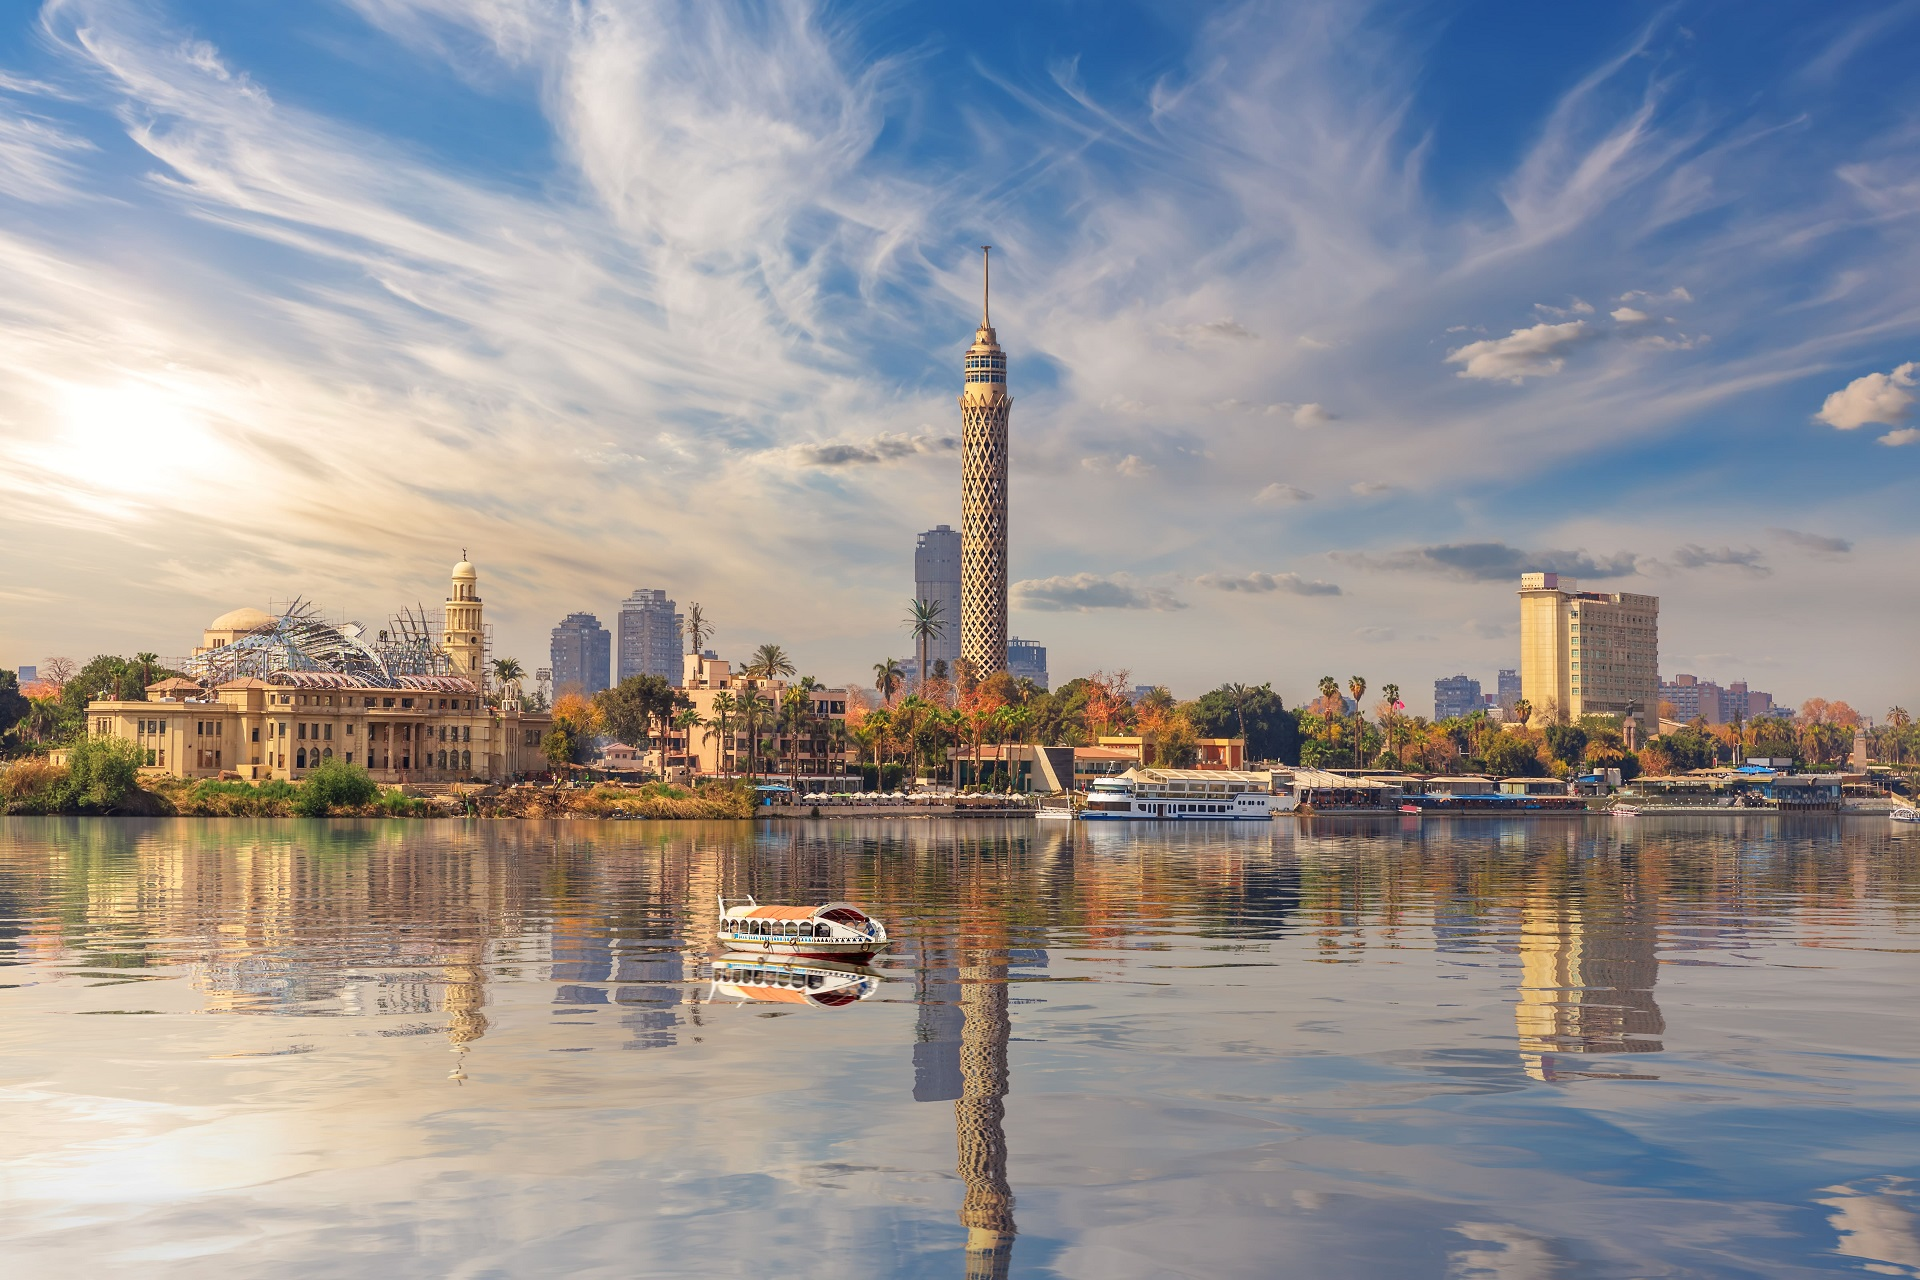 tv-tower-cairo-downtown-nile-egypt (1)